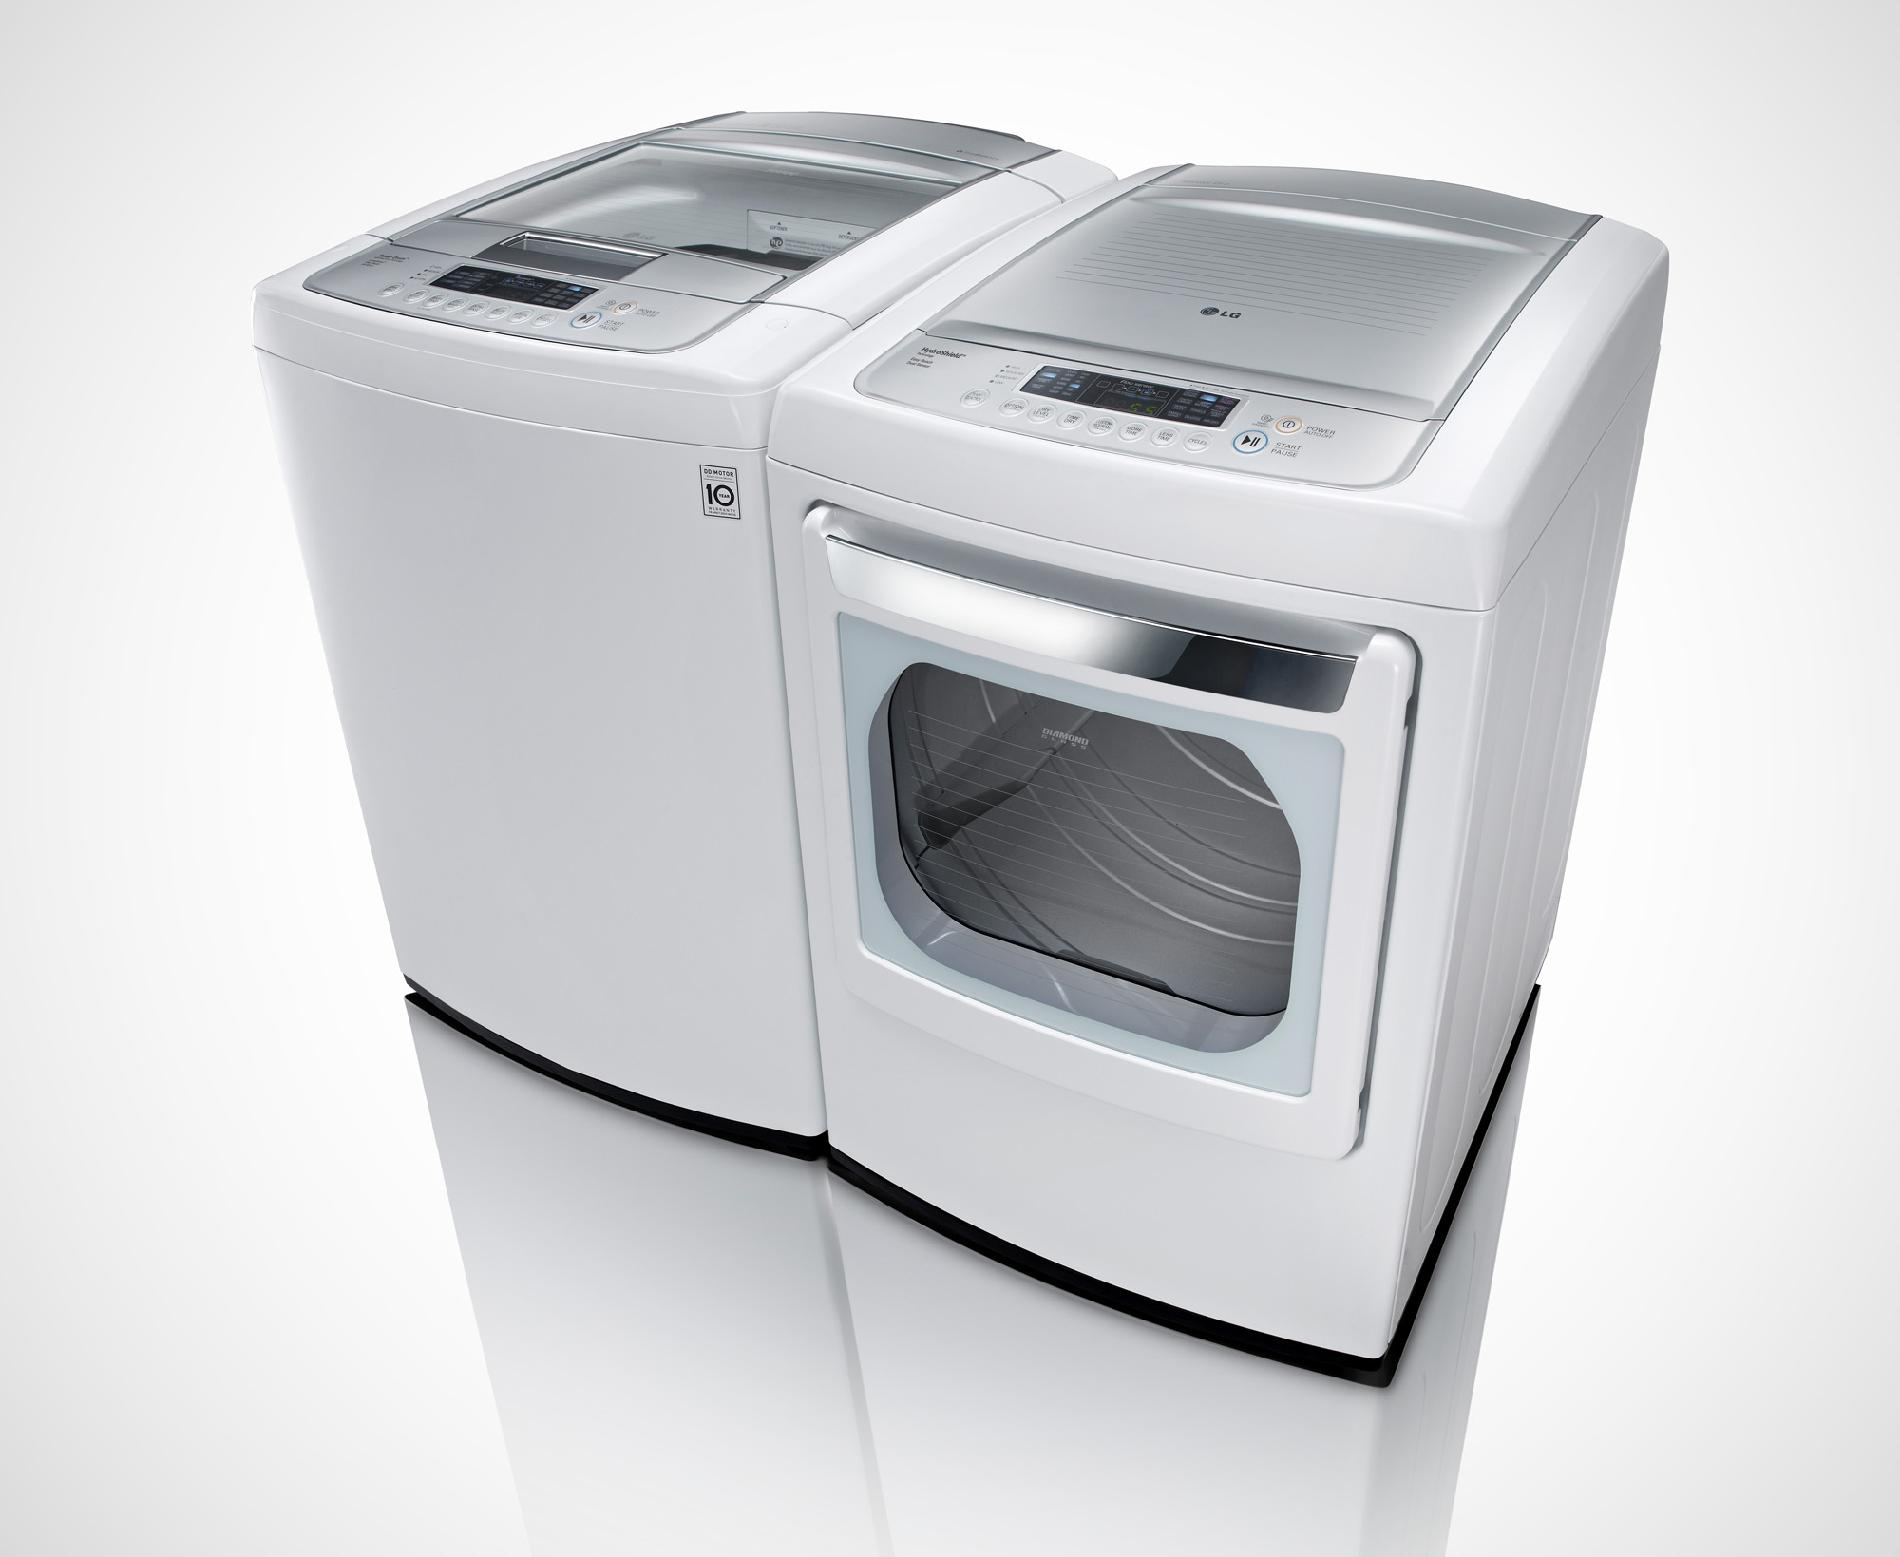 LG 4.3 cu. ft. High-Efficiency Top-Load Washer - White